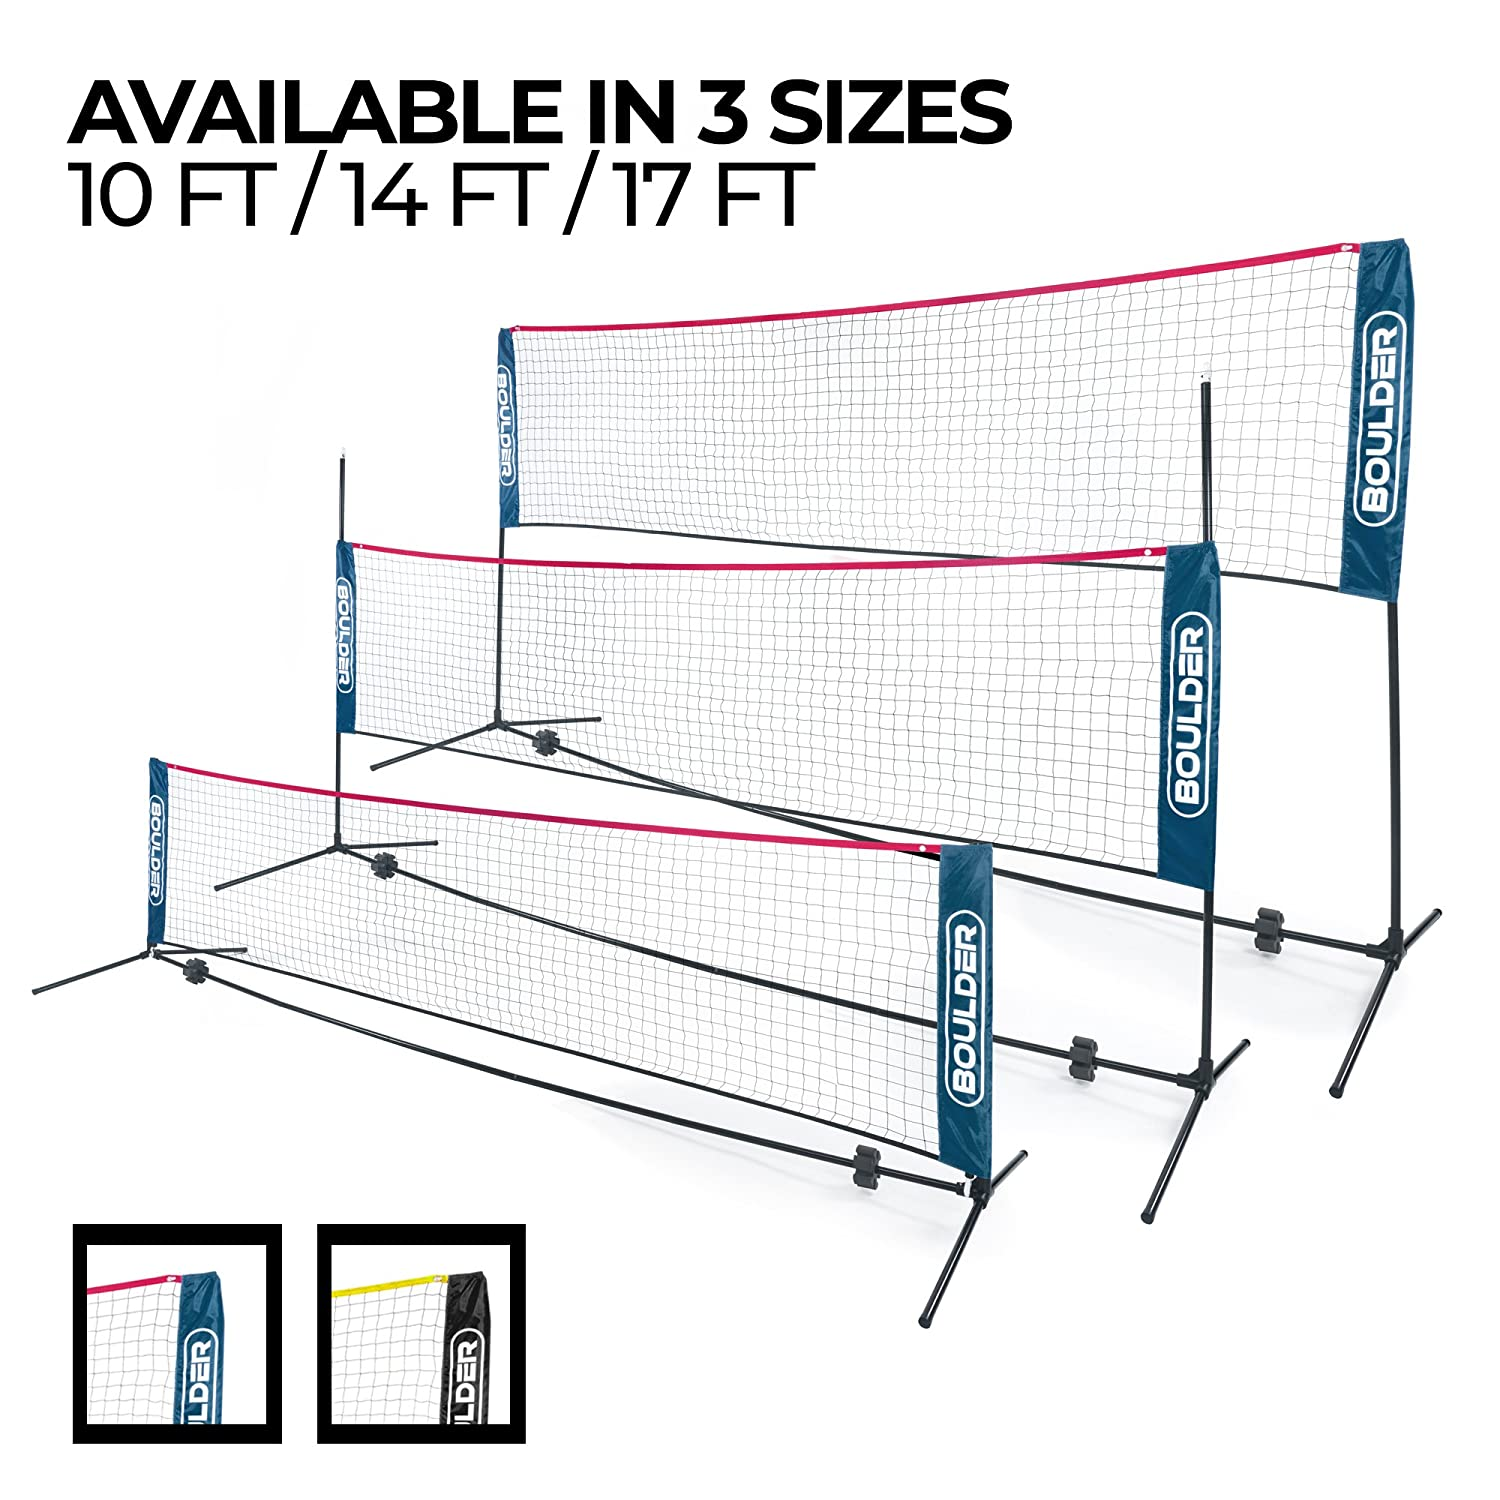 Boulder Portable Badminton Net Set Net for Tennis Soccer Tennis Pickleball Kids Volleyball Easy Setup Nylon Sports Net with Poles for Indoor or Outdoor Court Beach Driveway